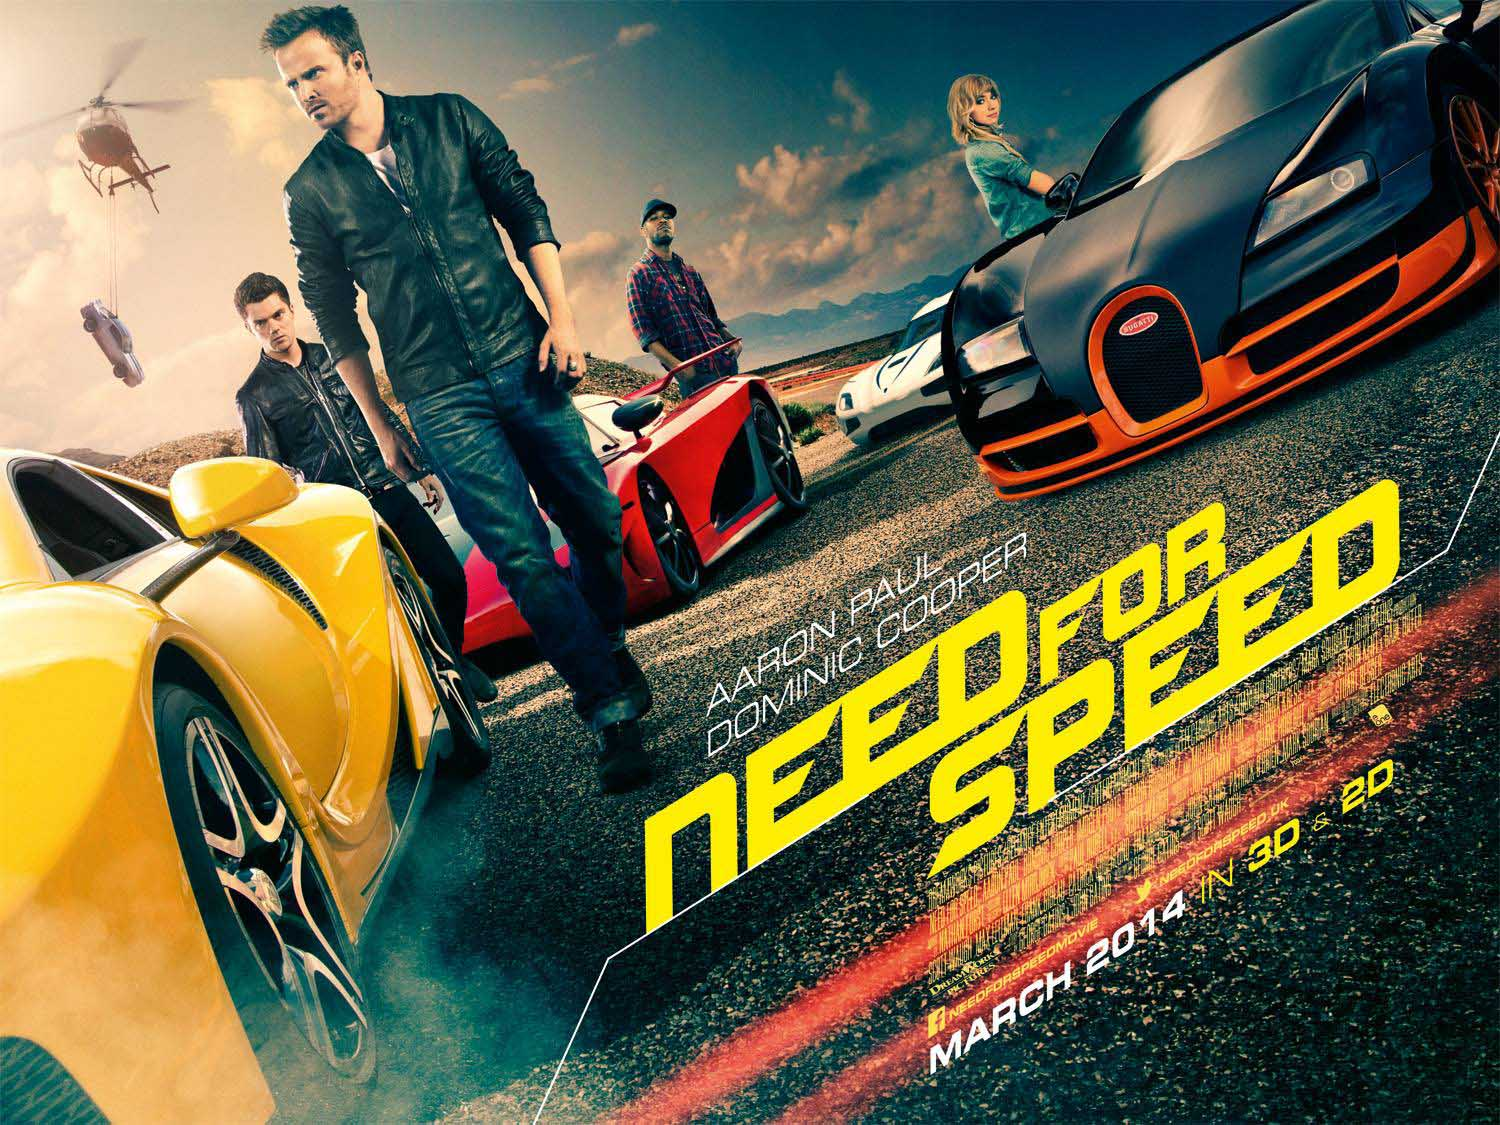 worlds best car racing movies